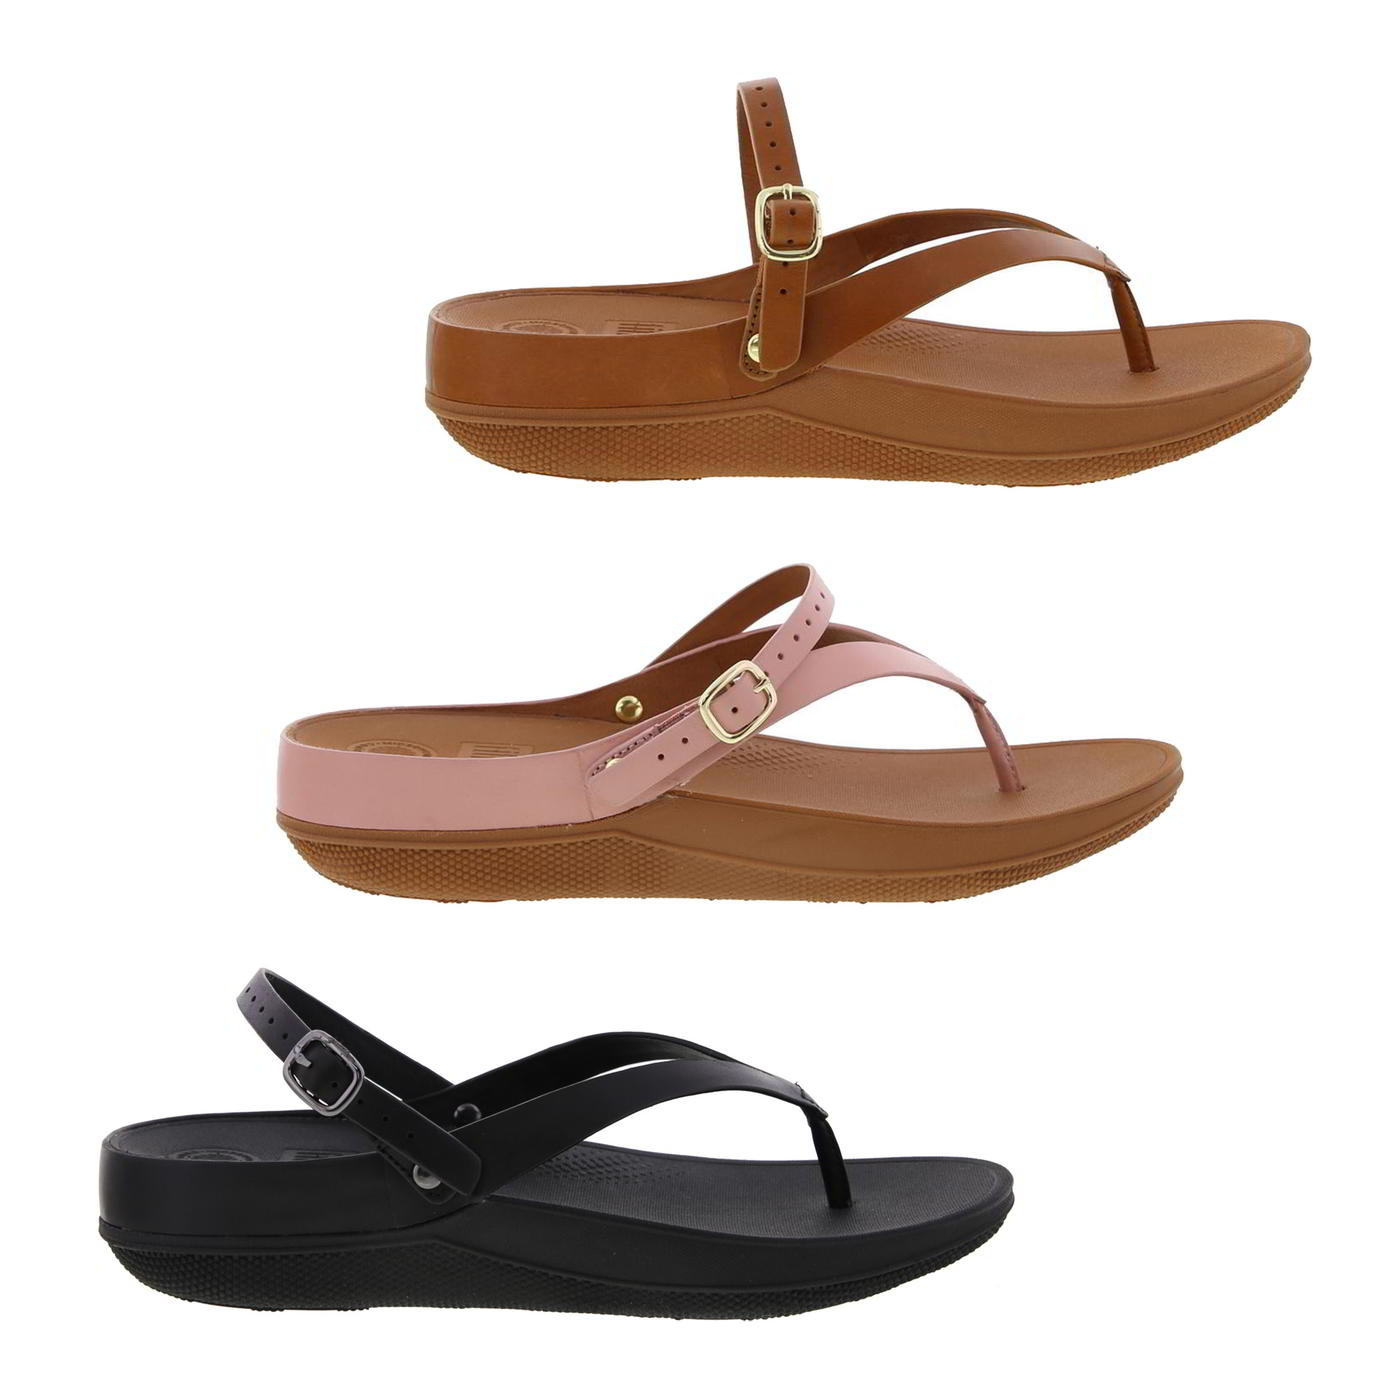 984f28d5f FitFlop Flip Leather Sandal Womens Ladies Pink Leather Toe Post ...